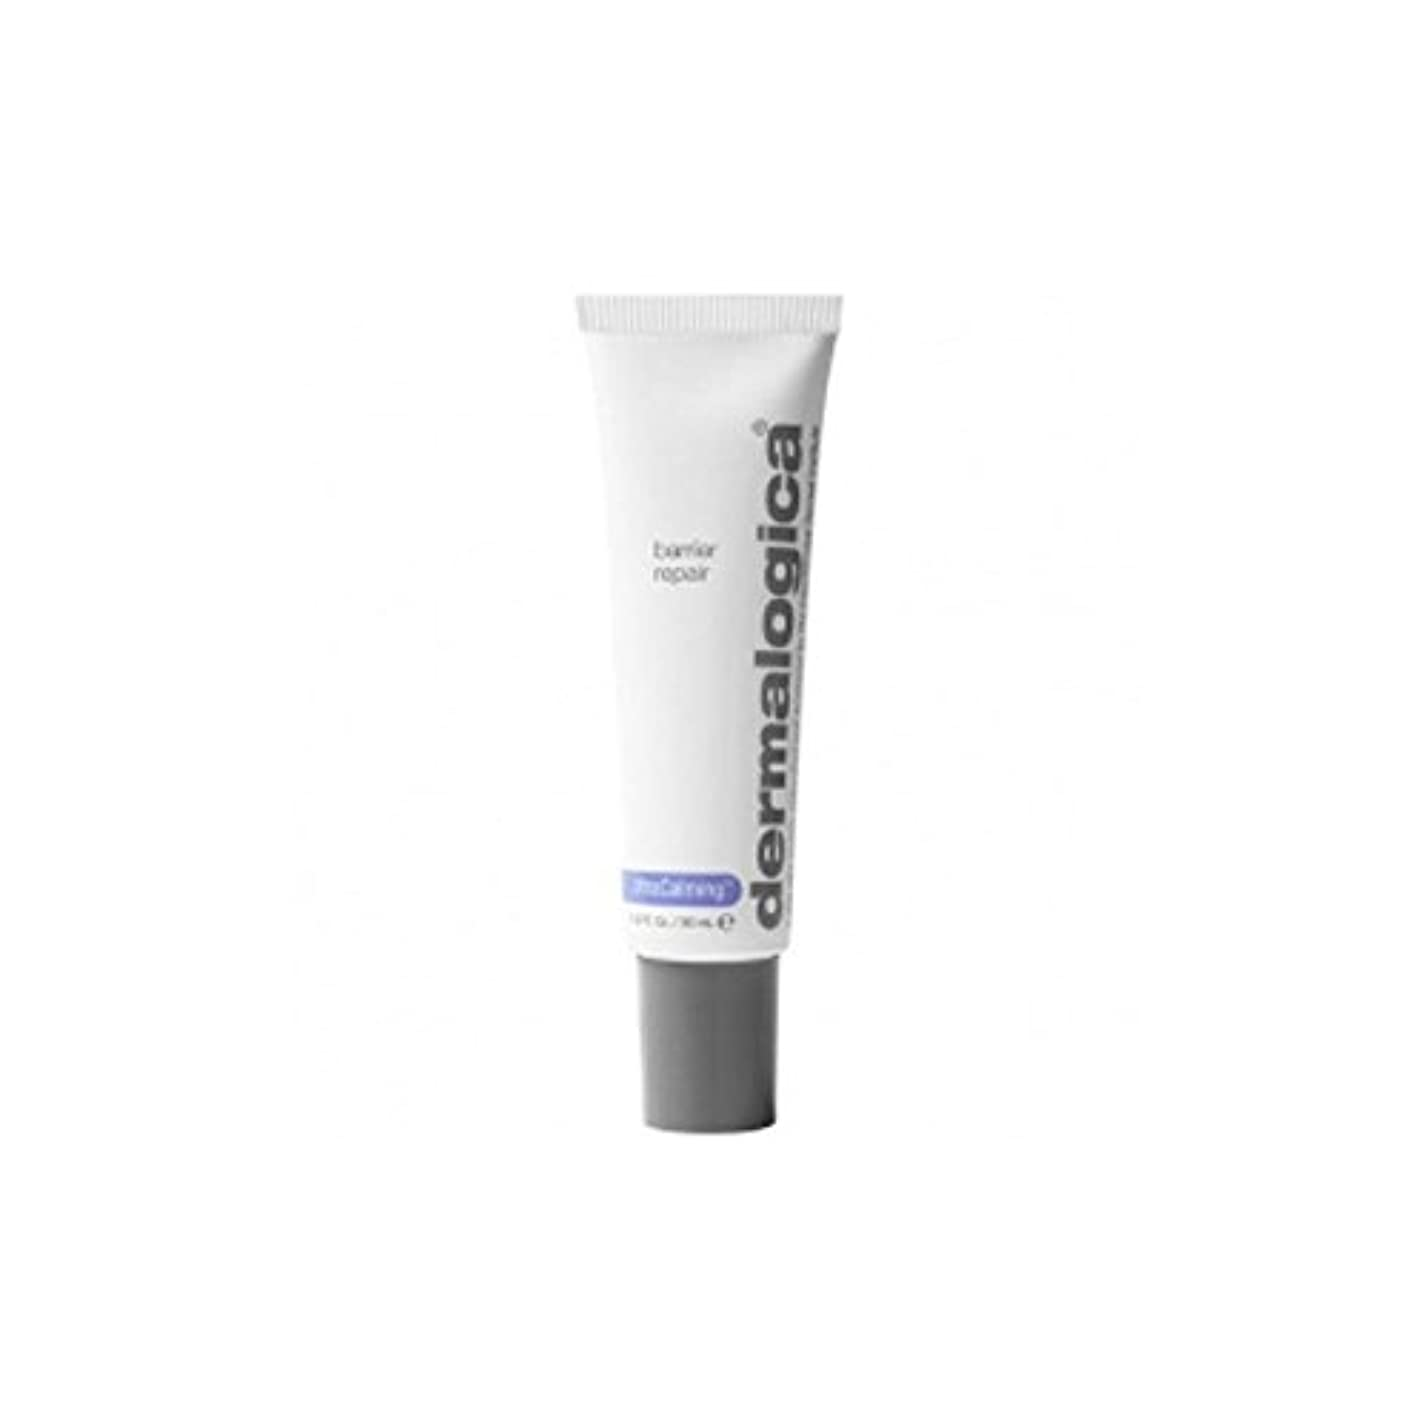 Dermalogica Ultracalming Barrier Repair (30ml) (Pack of 6) - ダーマロジカバリアリペア(30ミリリットル) x6 [並行輸入品]